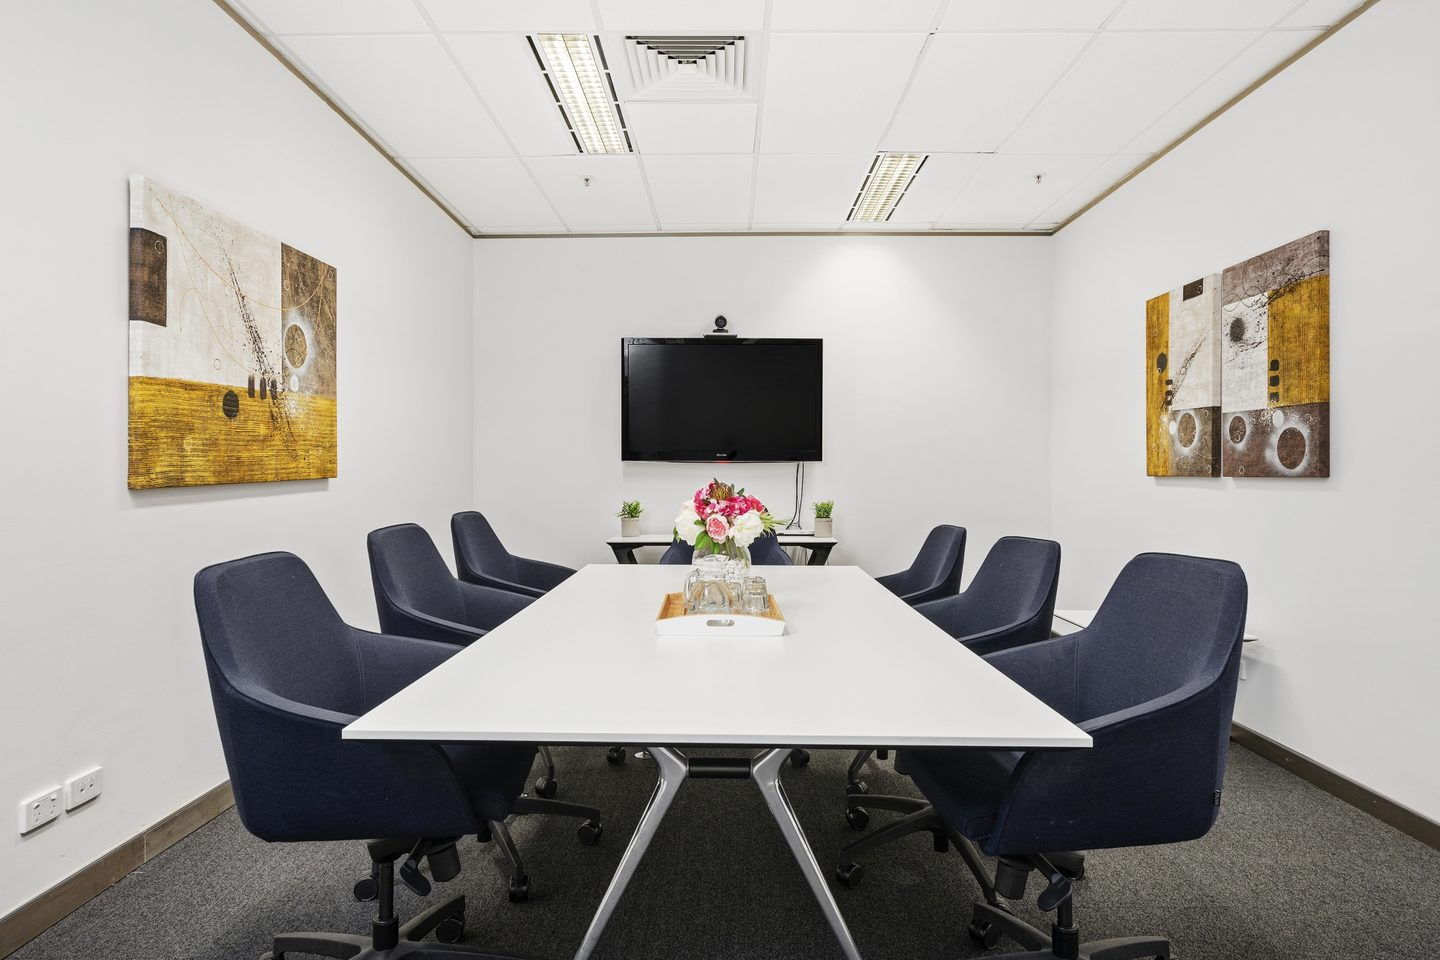 Marlborough Boardroom